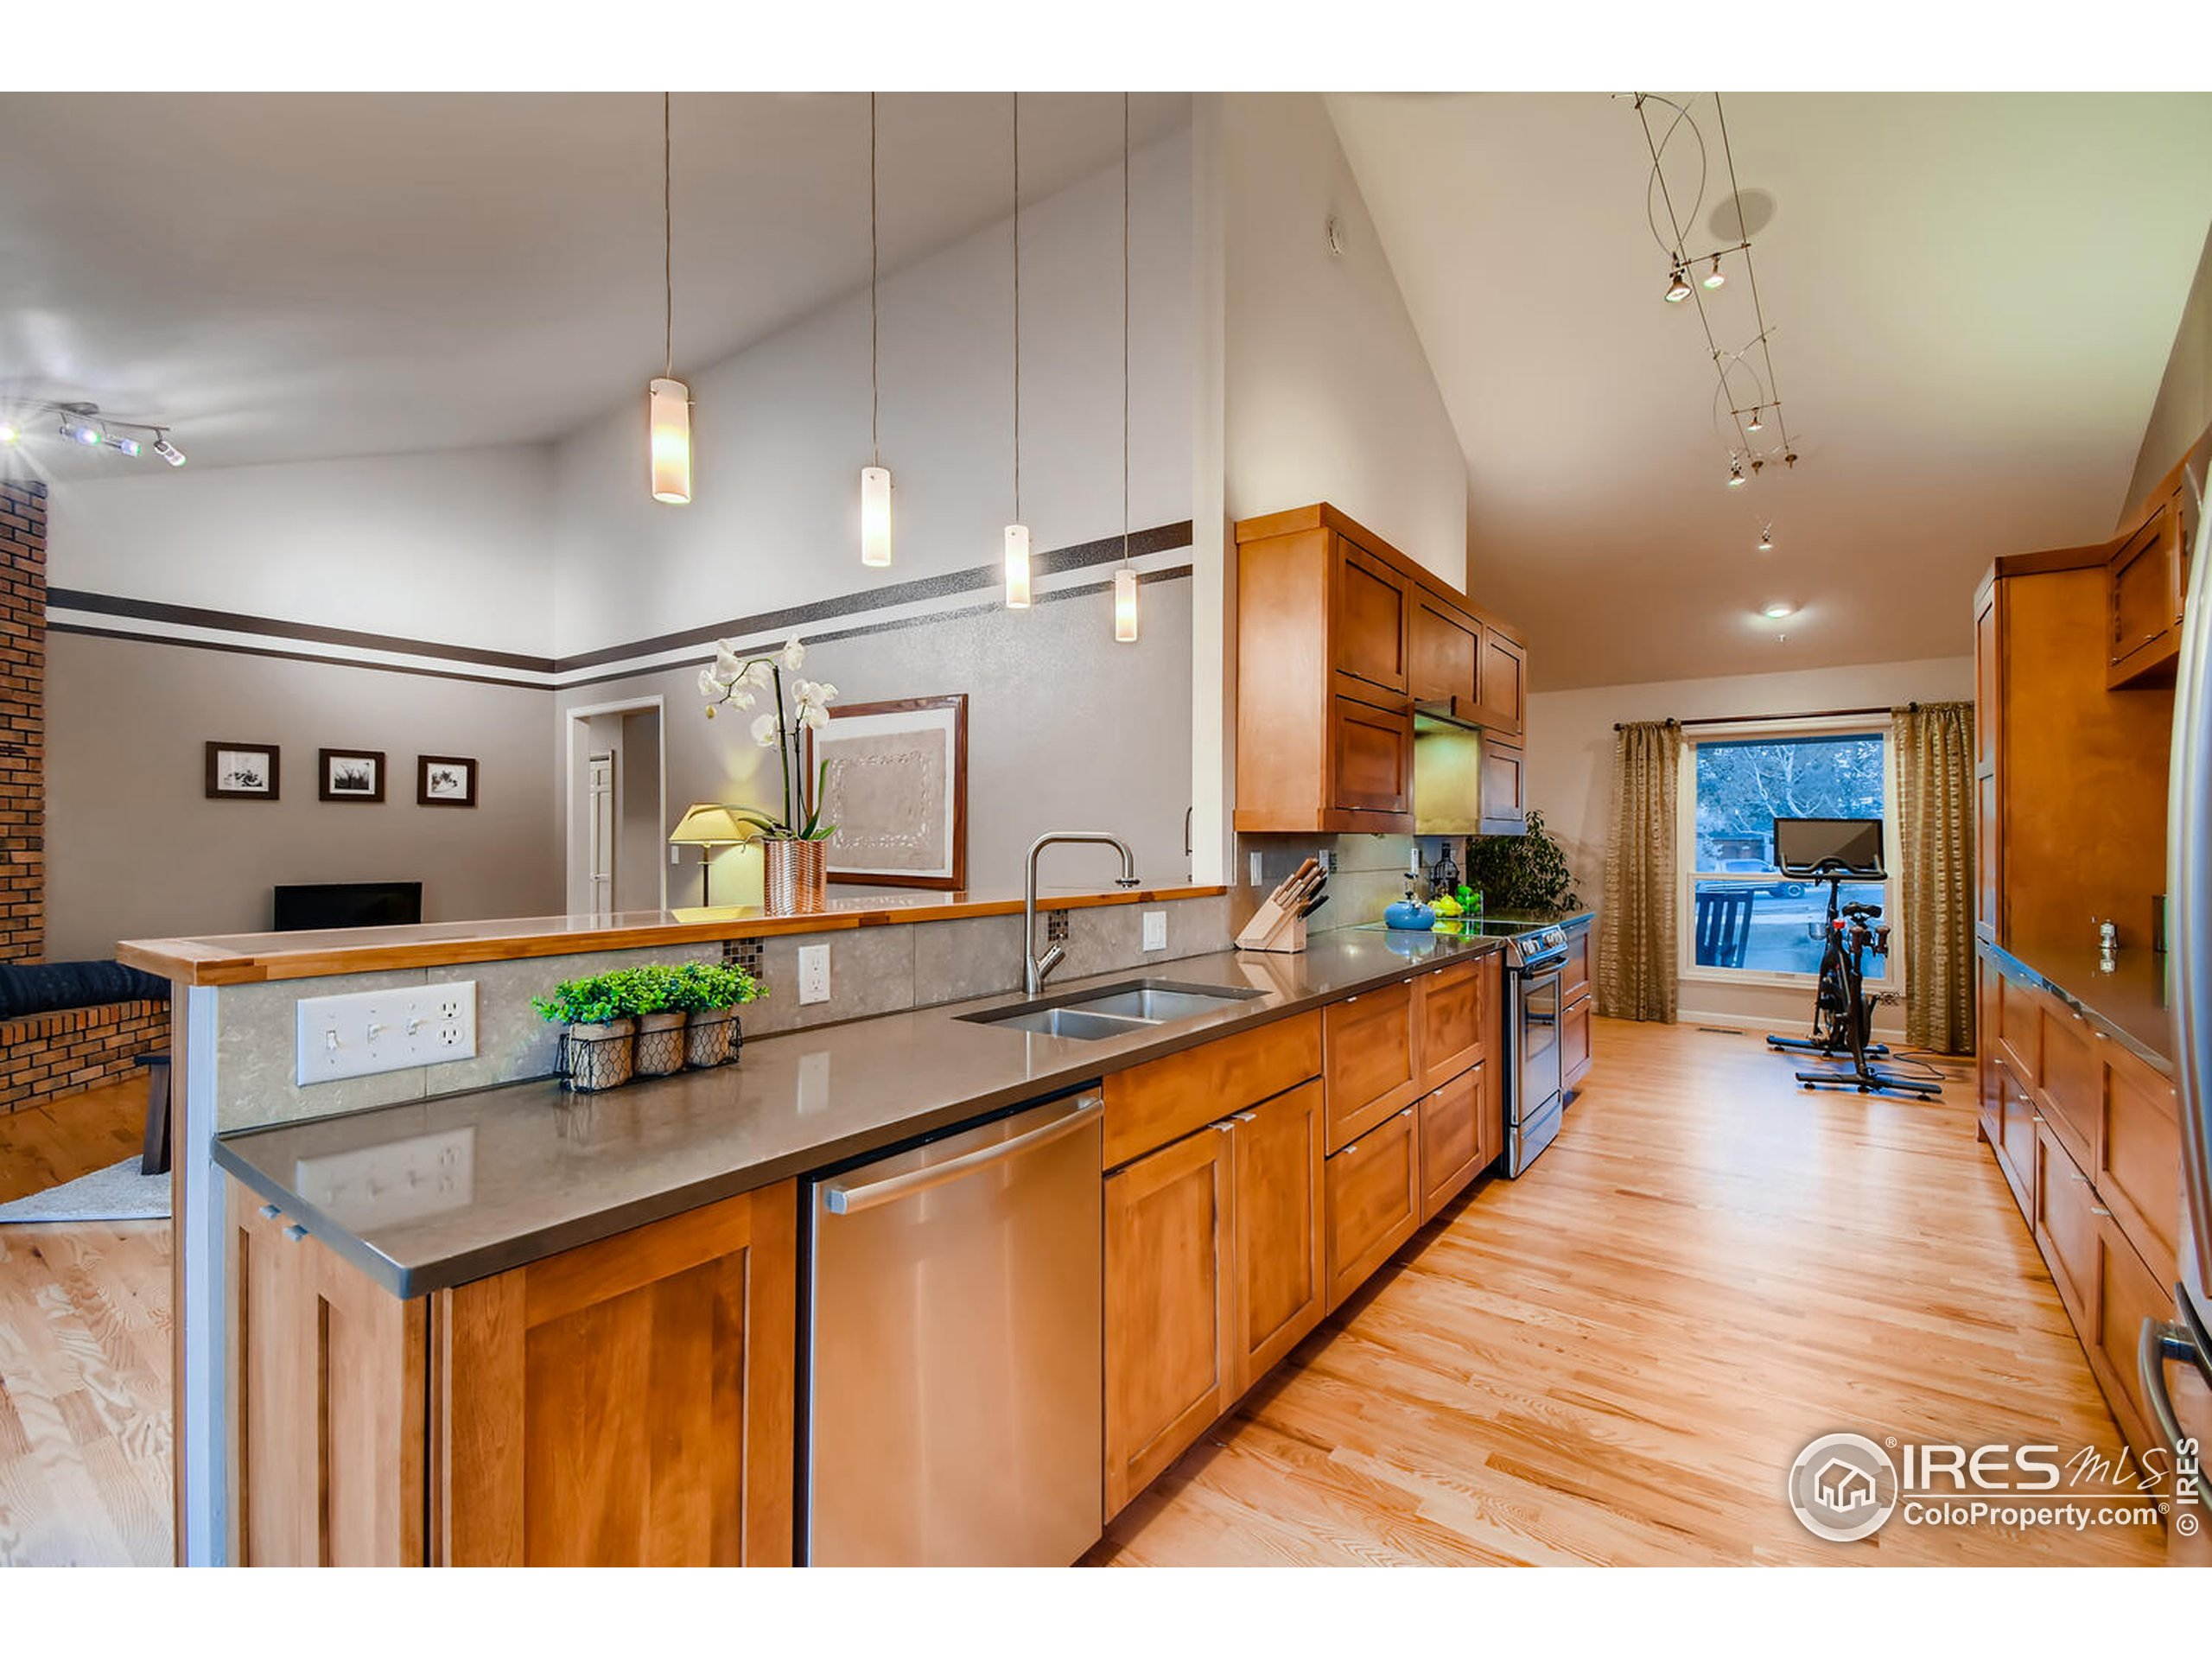 Quarts with Custom Cabinetry